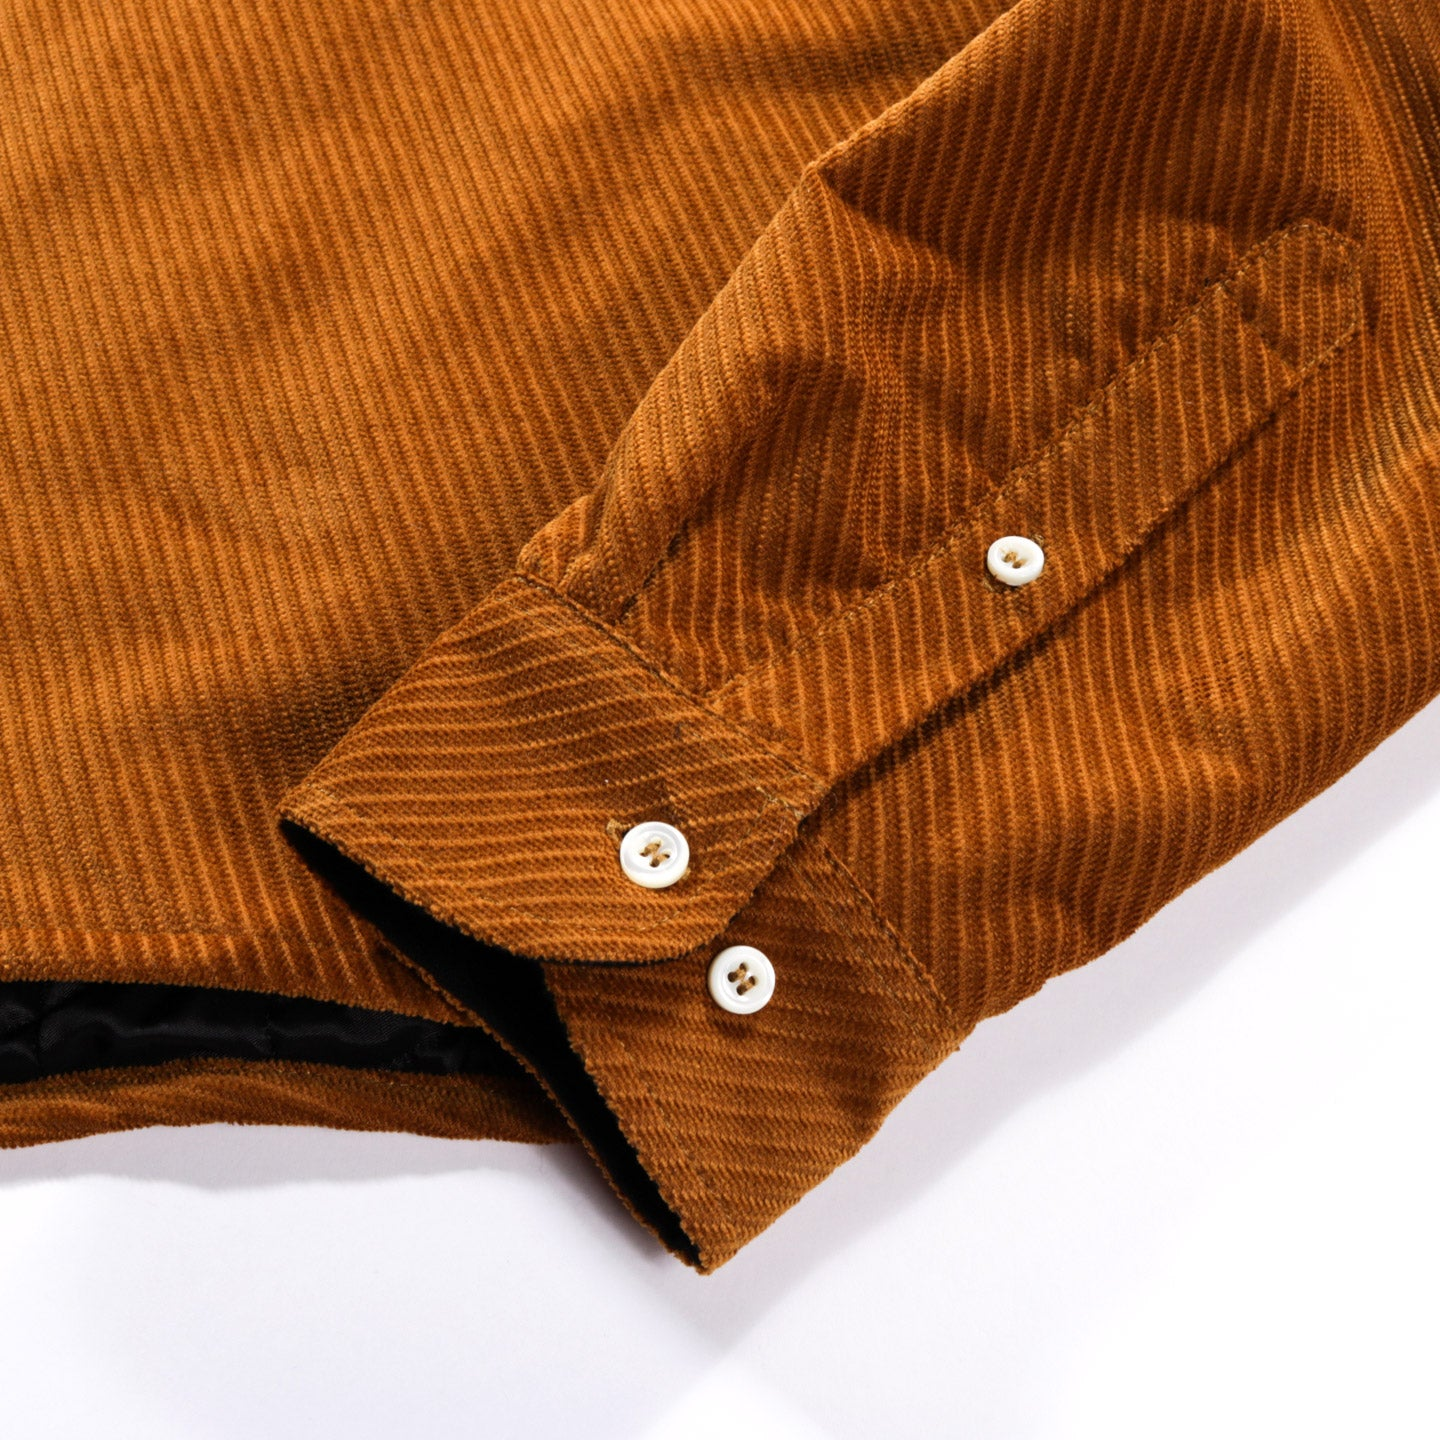 4SDESIGNS QUILTED BD SHIRT CHESTNUT DIAGONAL CORDUROY